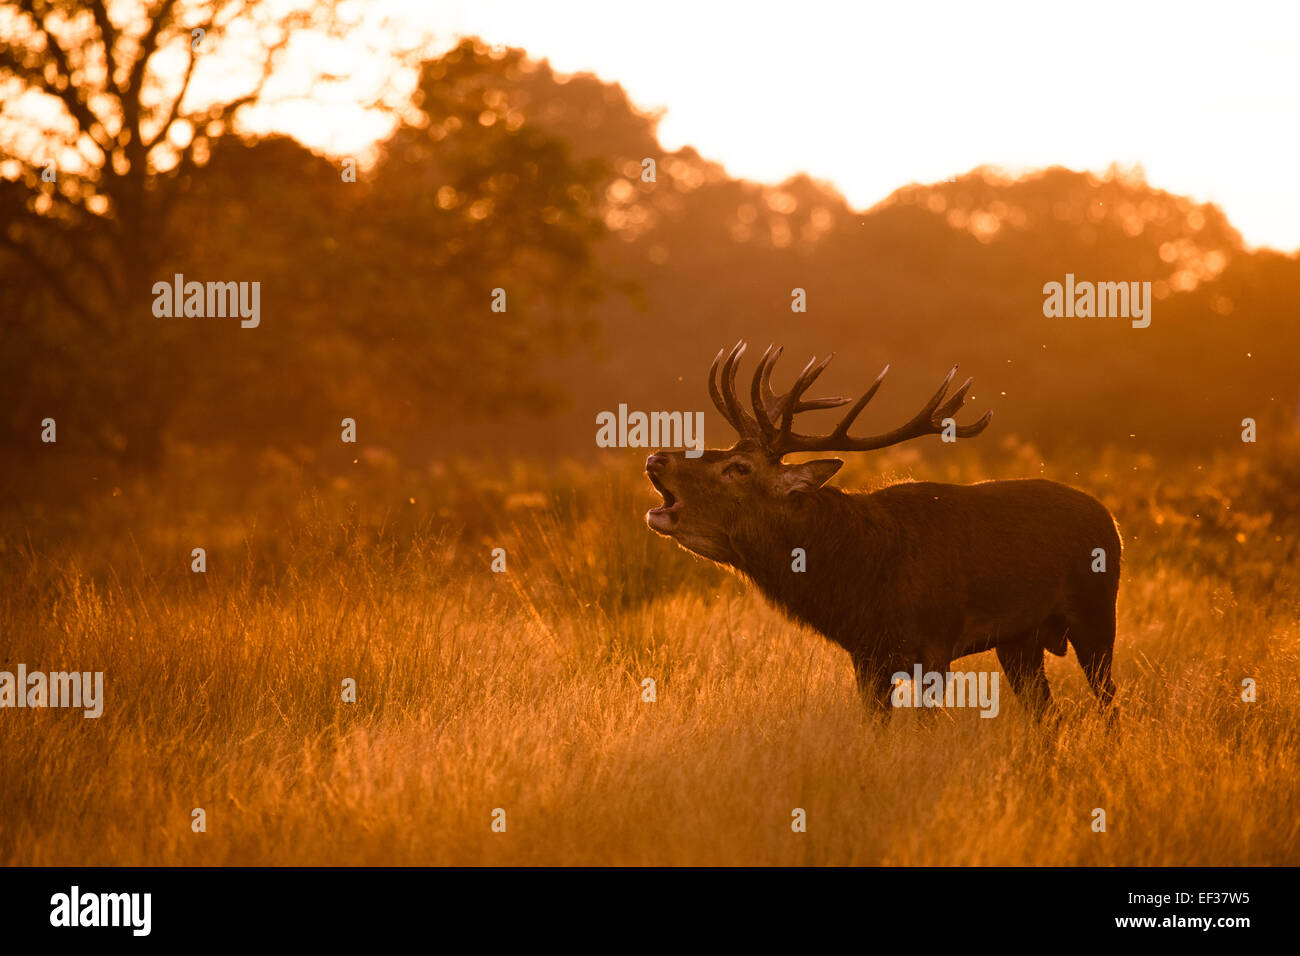 Bellowing Red deer stag. Richmond Park, London, UK - Stock Image